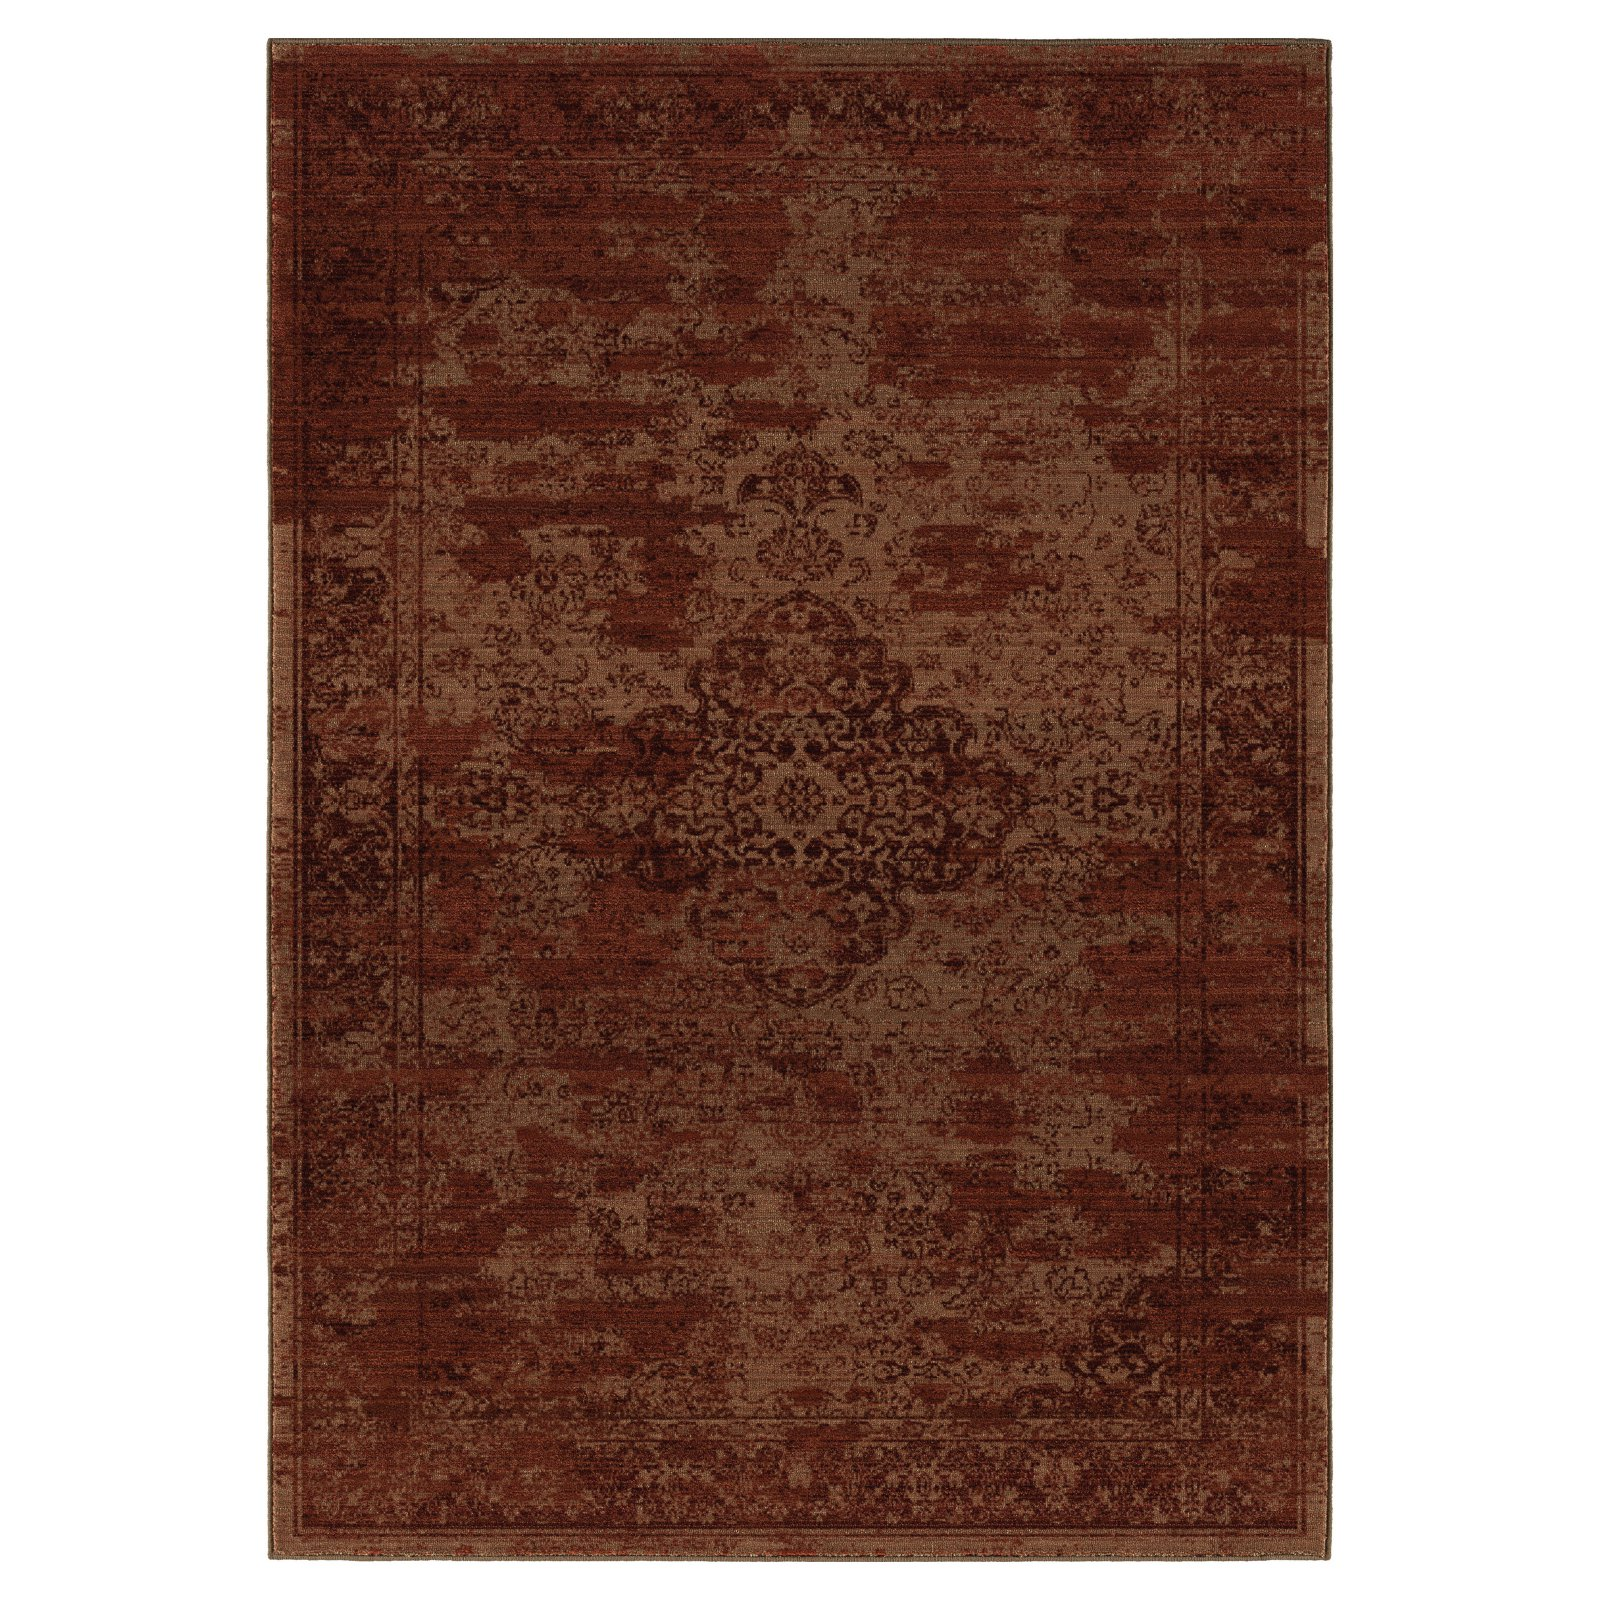 Orian Rugs Faded Damask Traditional Area Rug